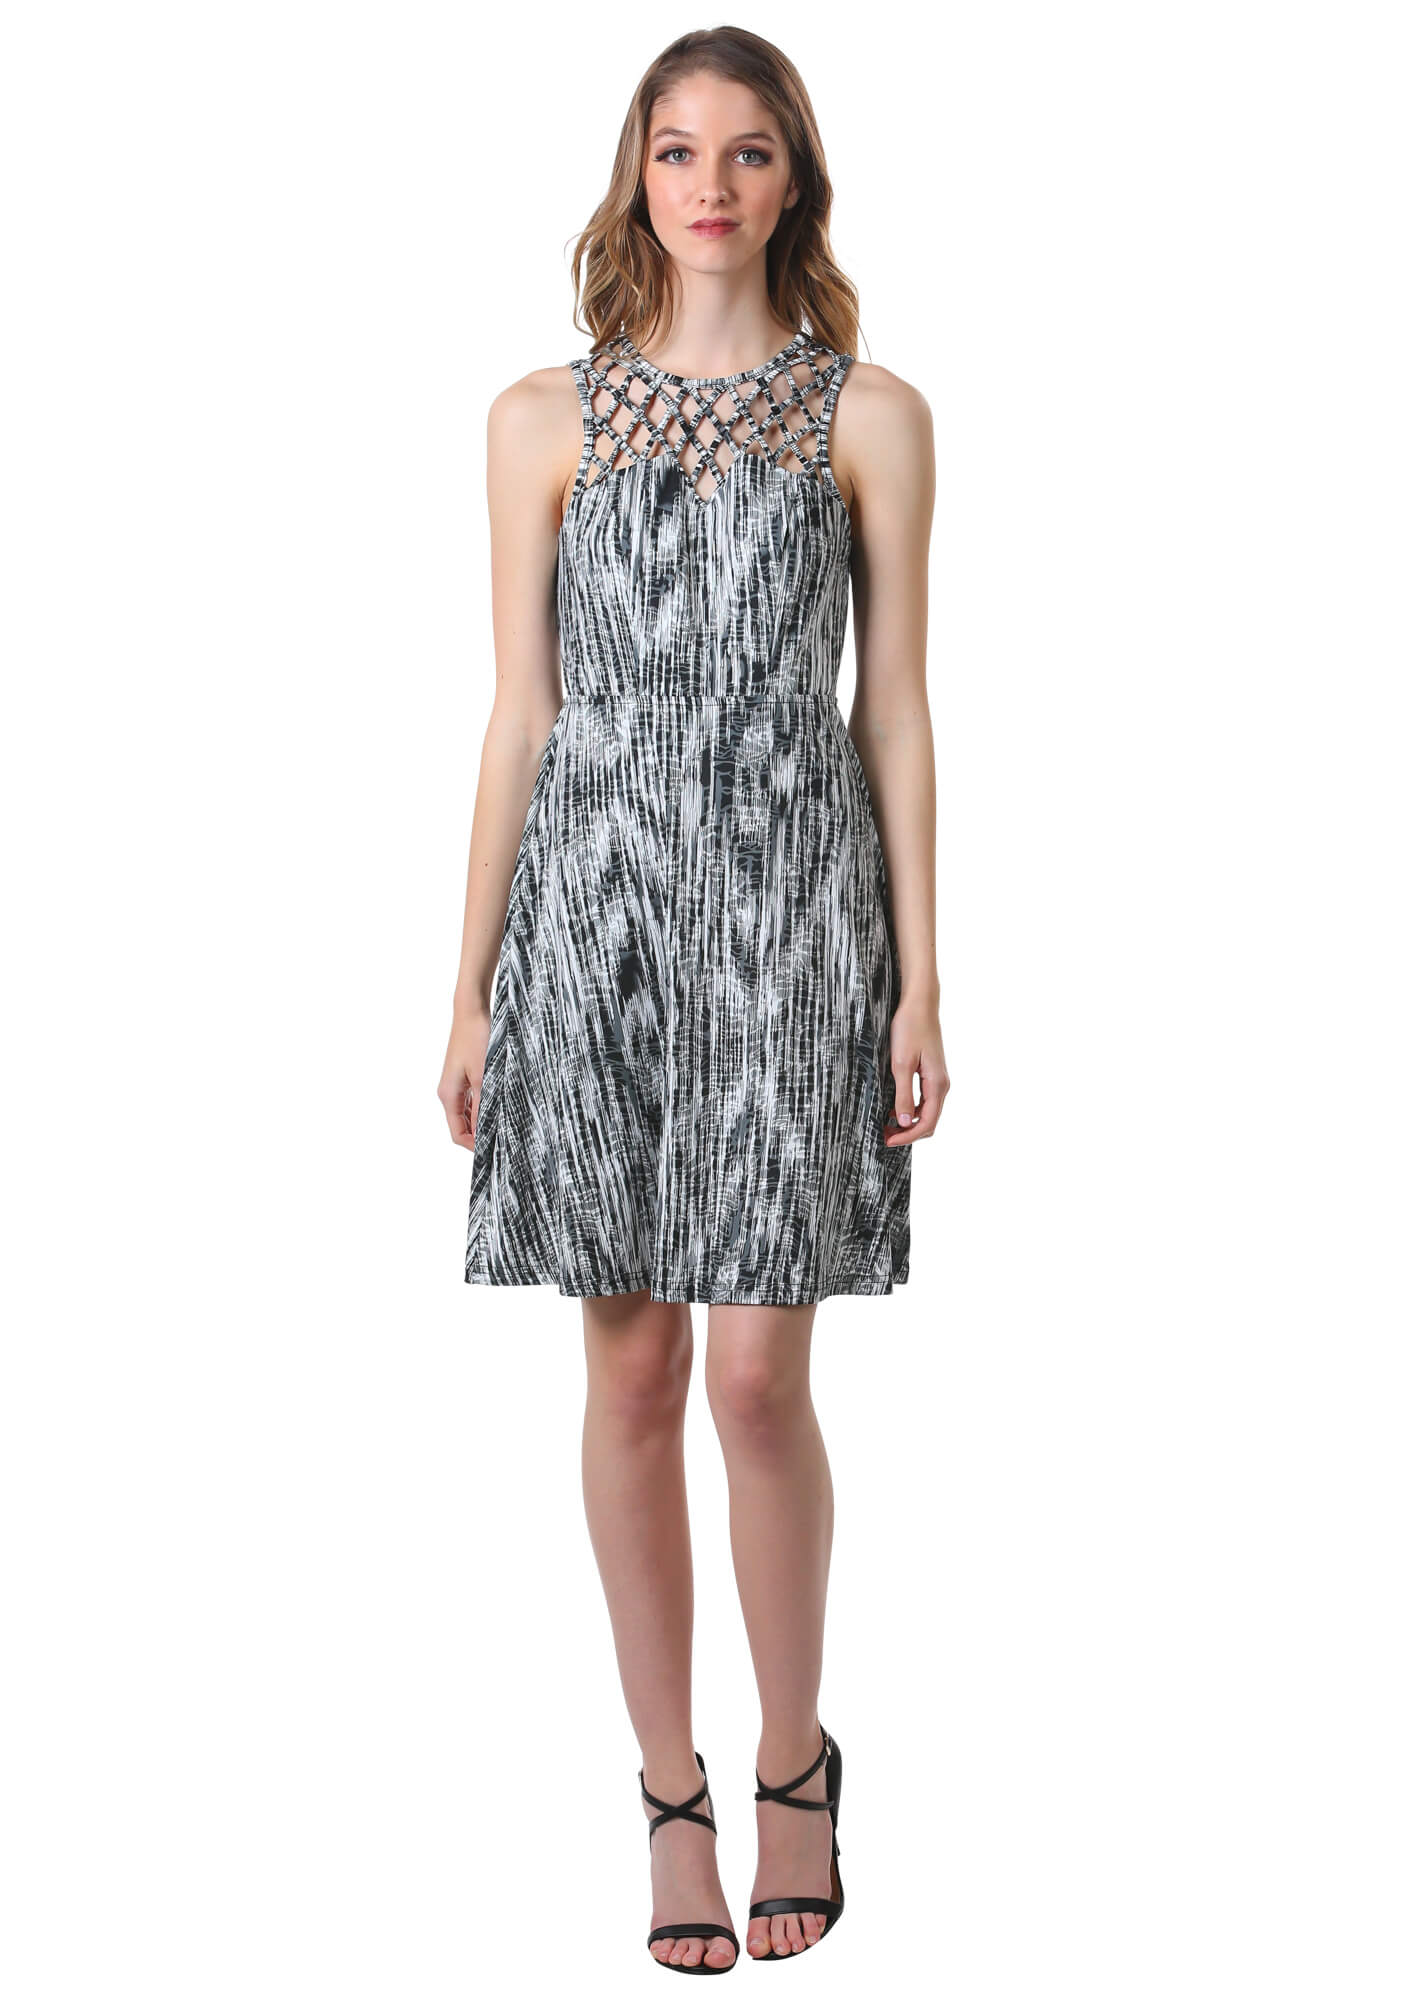 Criss Cross Lattice Fit and Flare Dress